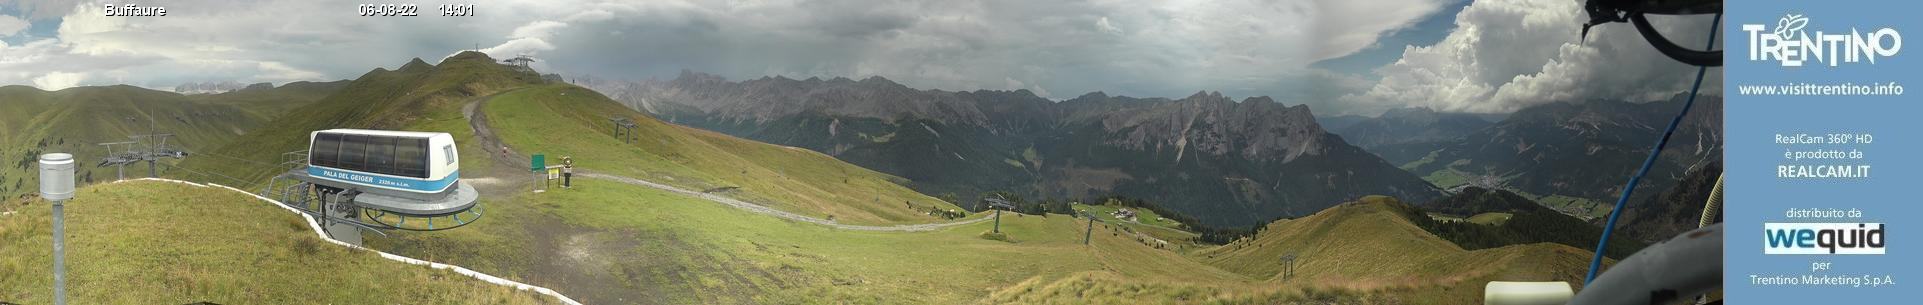 Interactive webcam Pozza di Fassa - Buffaure - Altitude: 2,354 metresArea: Col de Valvacin Panoramic viewpoint: panoramic view over the ski area Pozza-Buffaure. From the left: Jumela Valley (Sassolungo Group and Pordoi in the background), San Nicolò Valley (towered above by Col Ombert), Creste di Costabella, Monzoni Group with ...